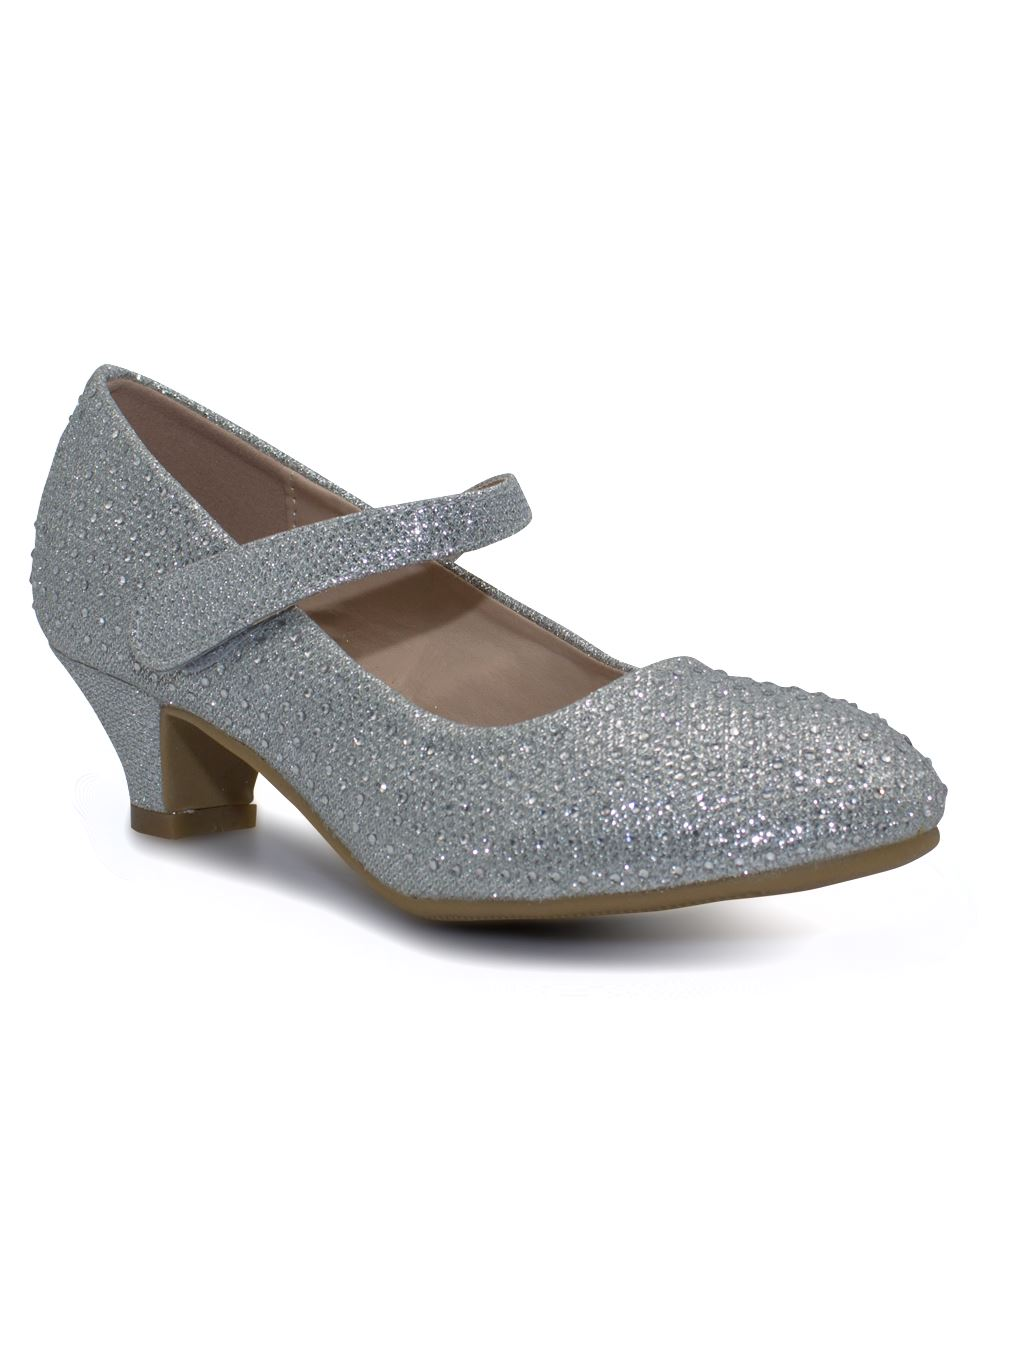 Girls-Party-Bridesmaid-Glitter-Diamante-Wedding-Block-Low-Heel-Shoes miniatura 7